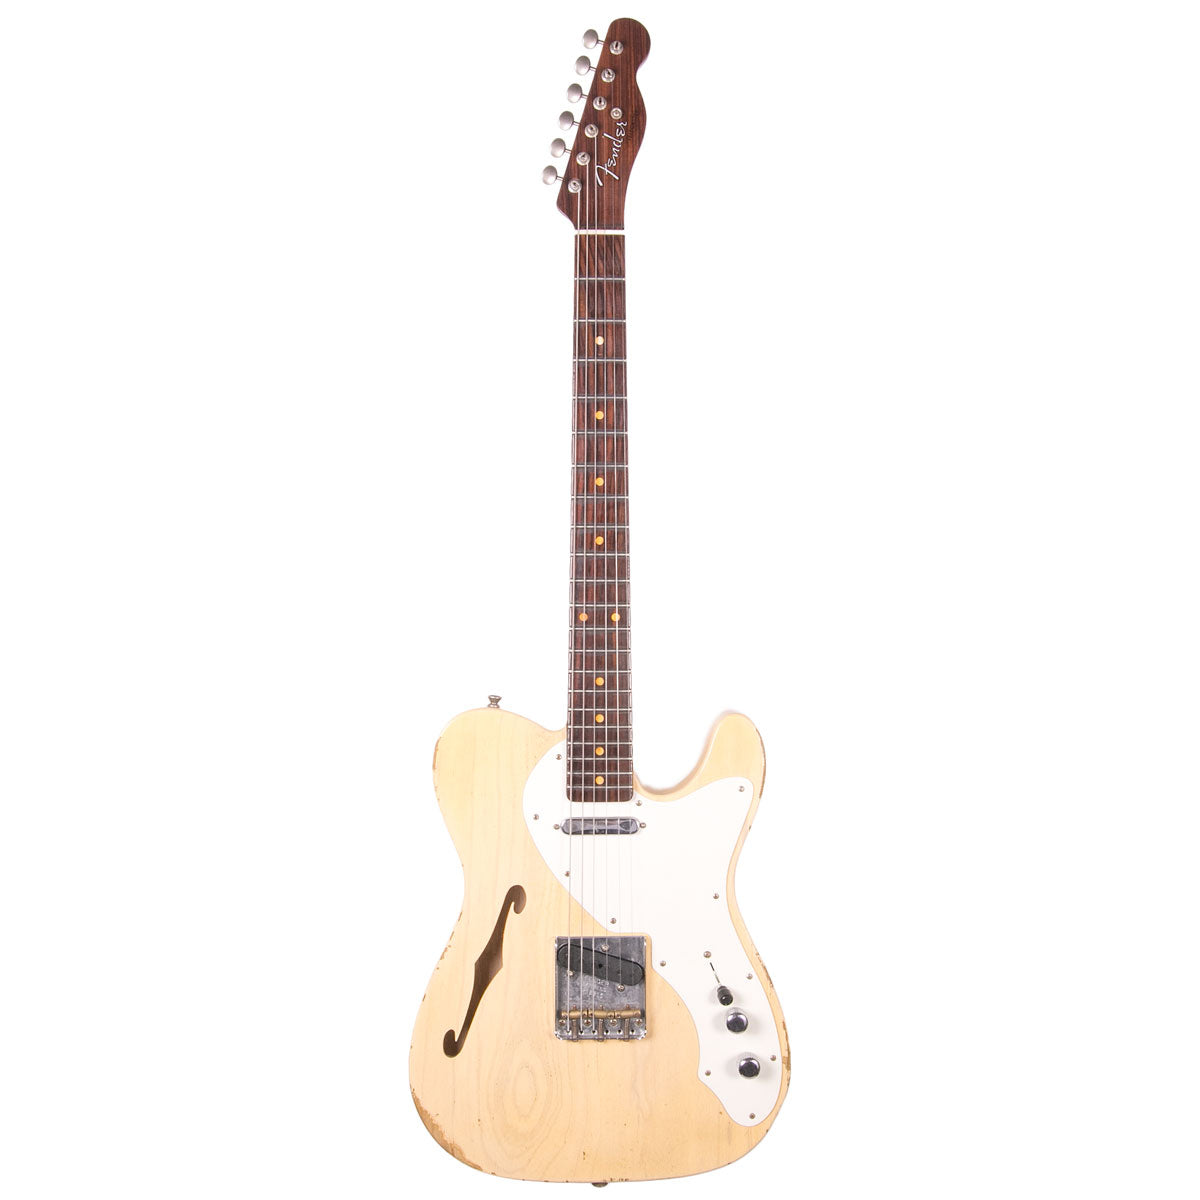 Fender Custom Shop - Limited Edition 50s Thinline Telecaster Relic - Vintage Blonde | Lucky Fret Music Co.